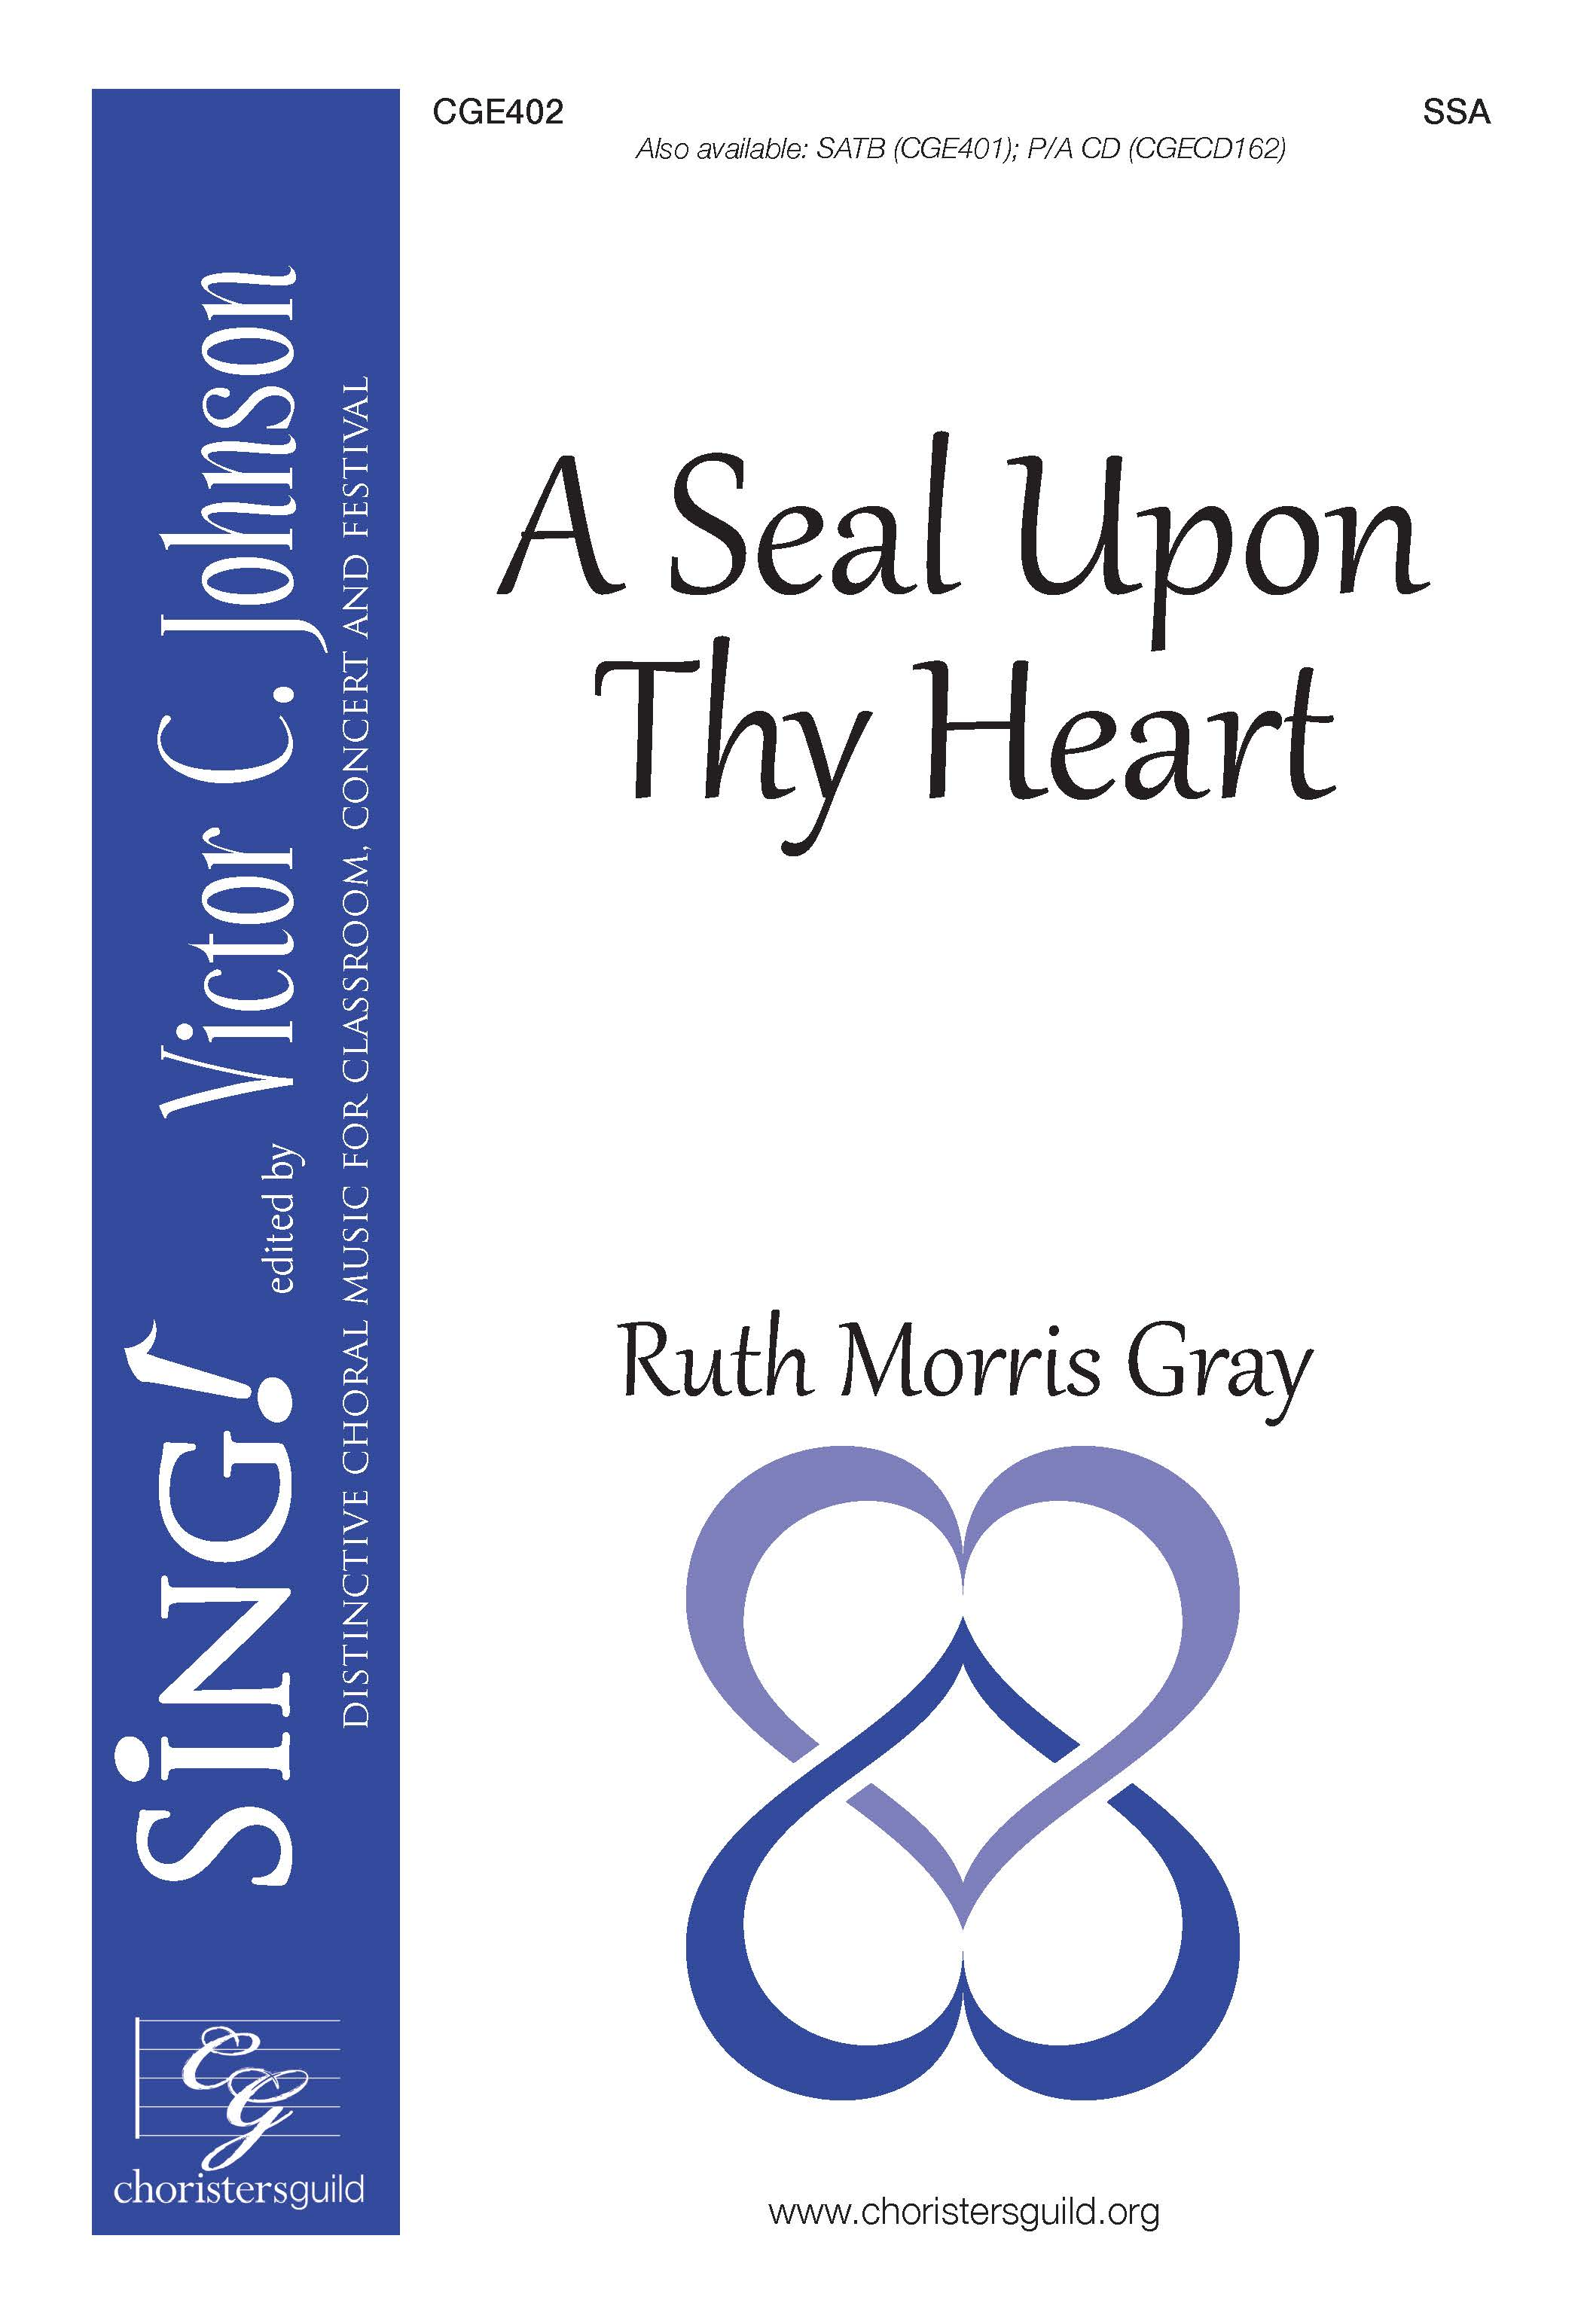 A Seal Upon Thy Heart - SSA